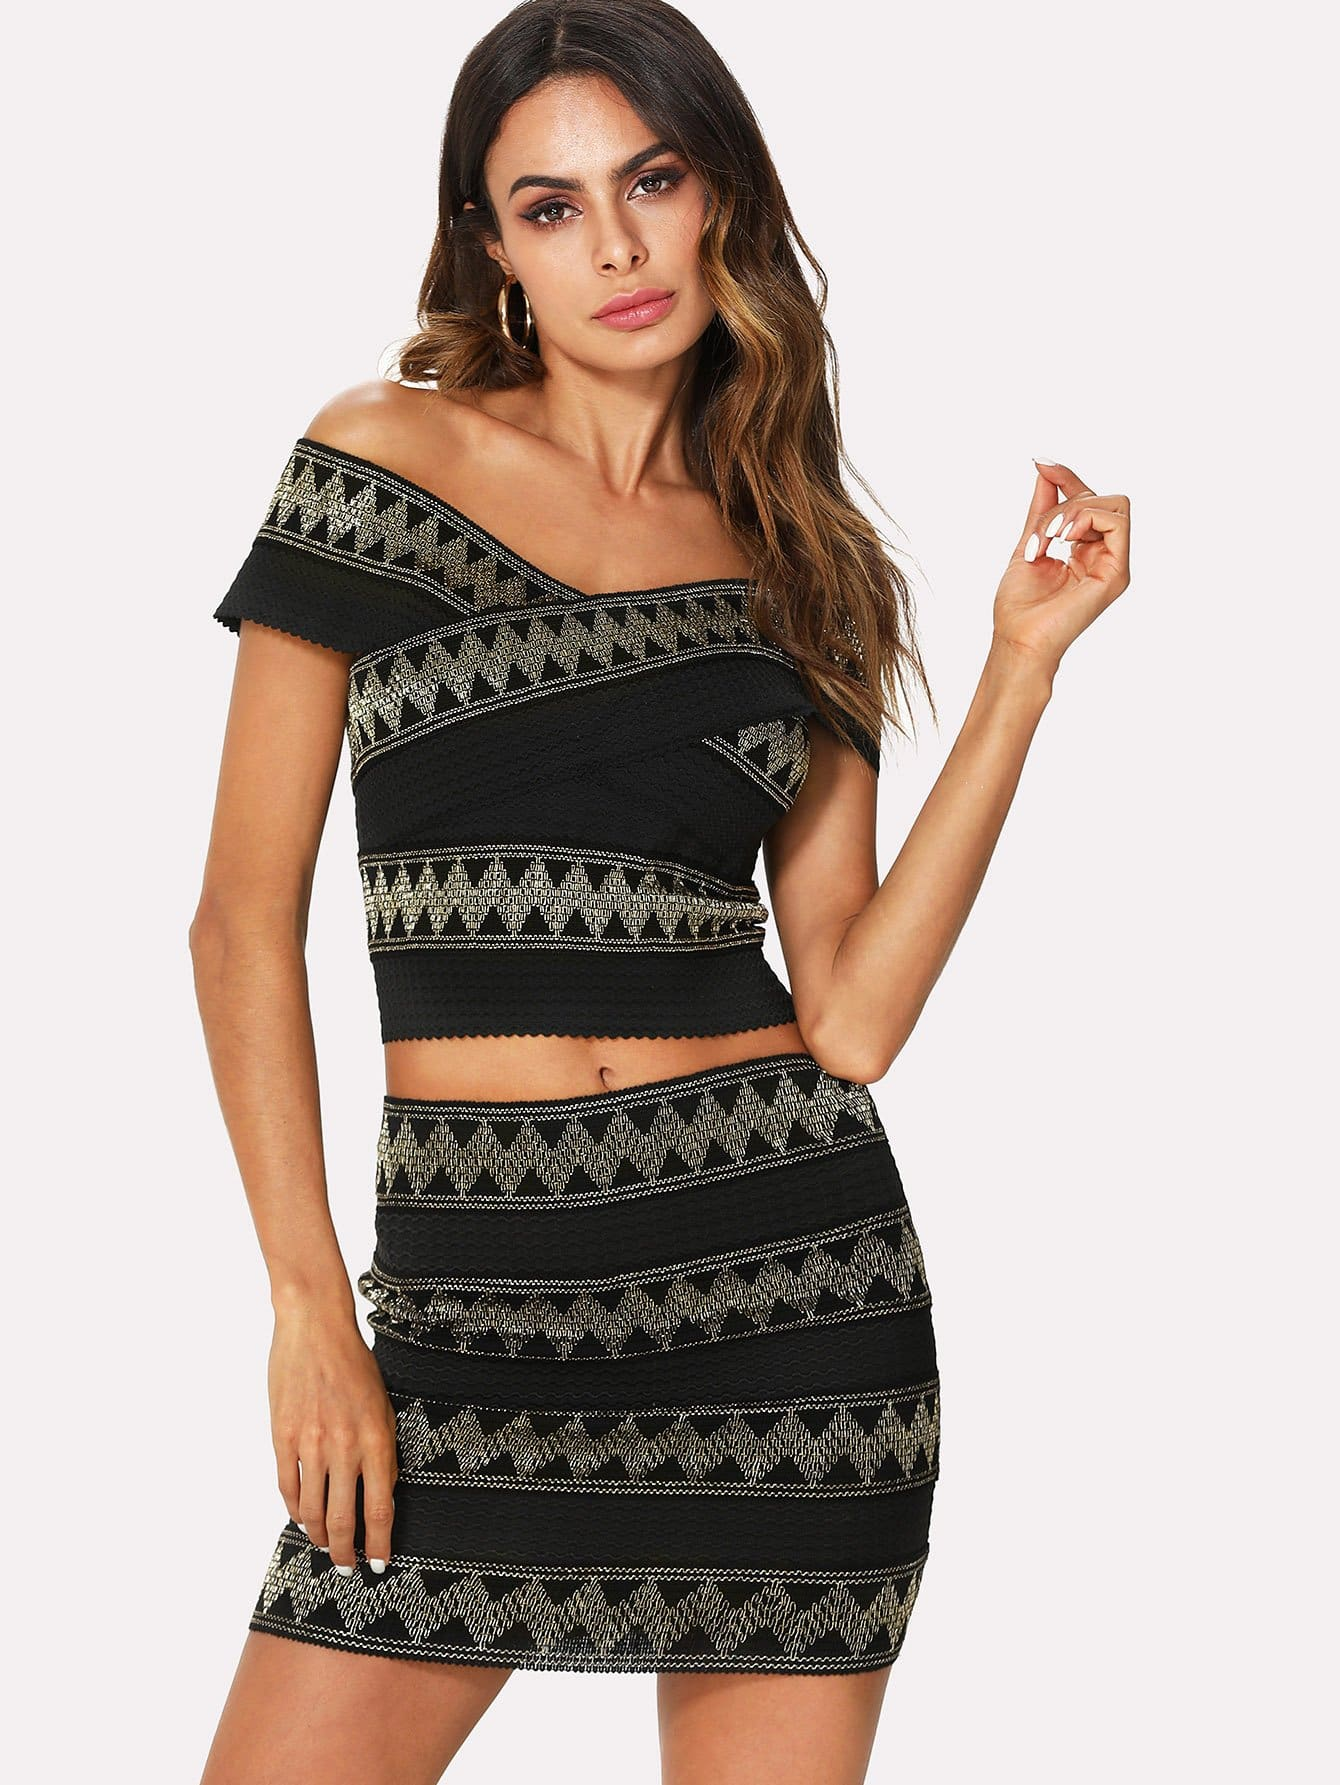 Geometric Embroidered Zip Back Crop Top & Skirt zip back plaid crop top and skirt set